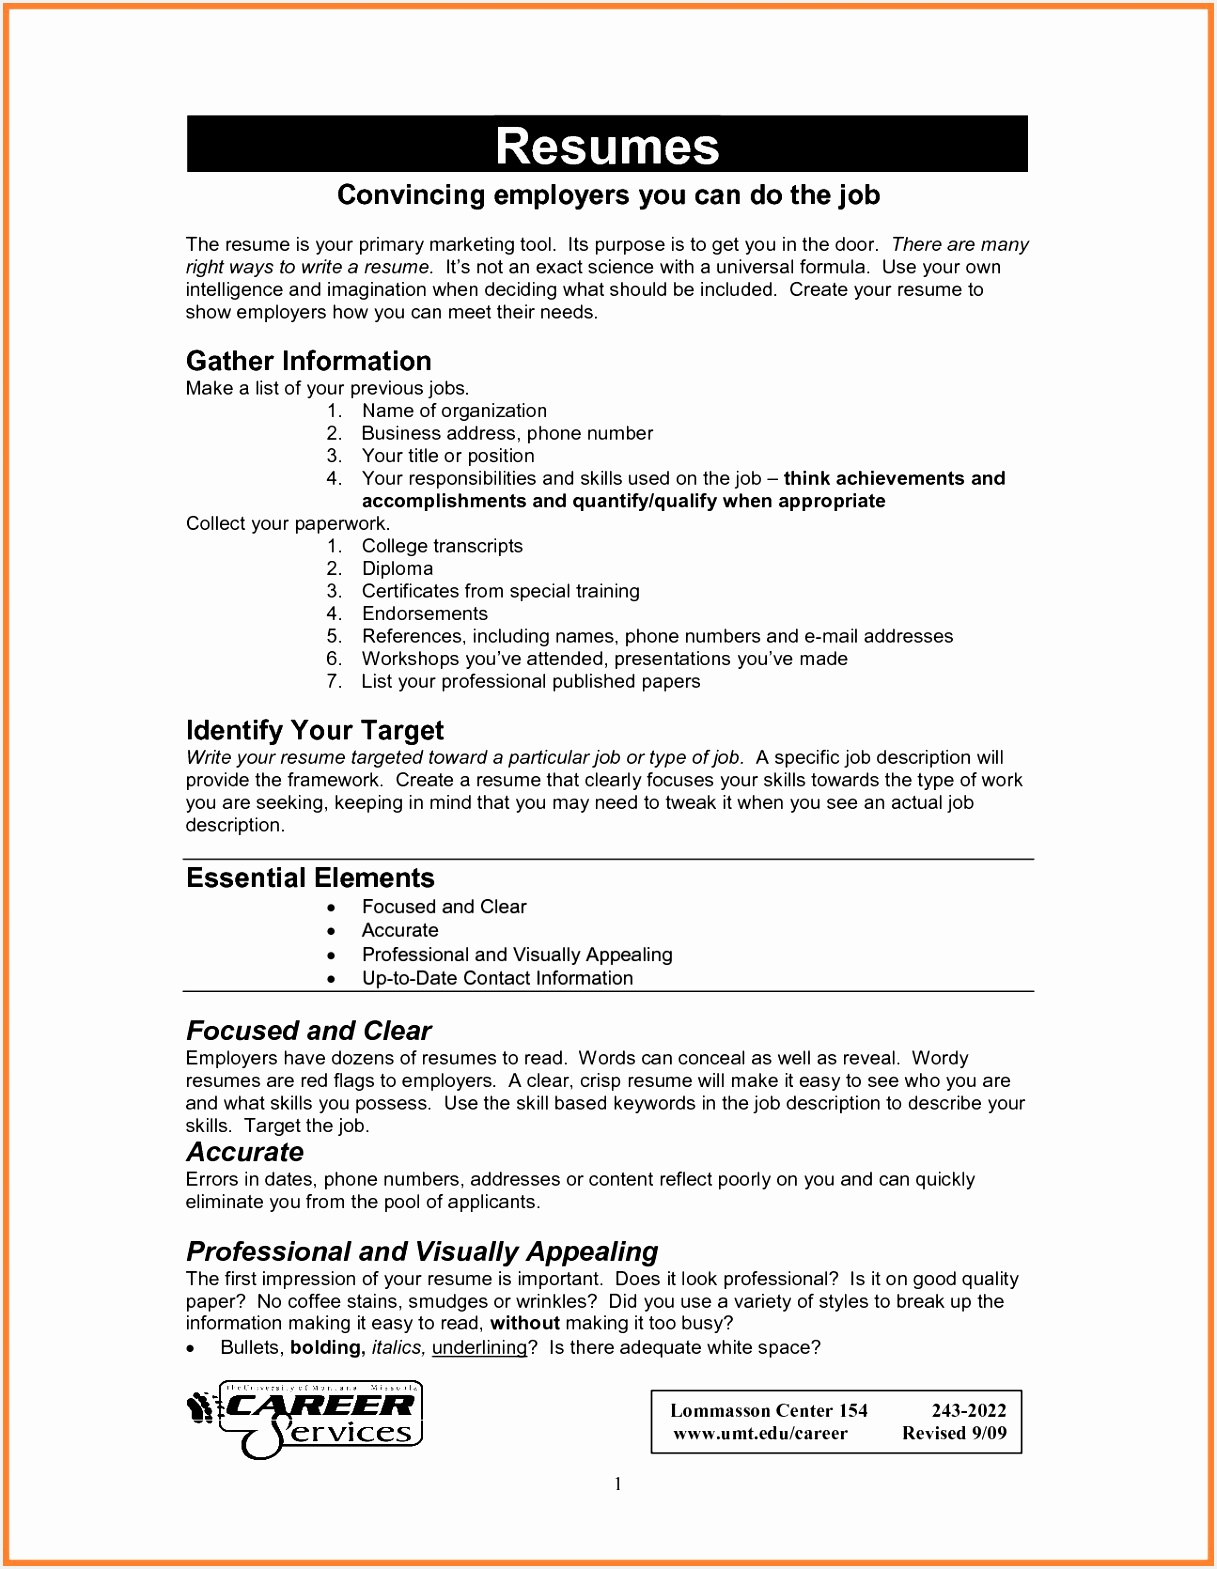 Examples Of First Resumes Fyofj Beautiful How to Make A College Resume New Best Sample College Application15691217